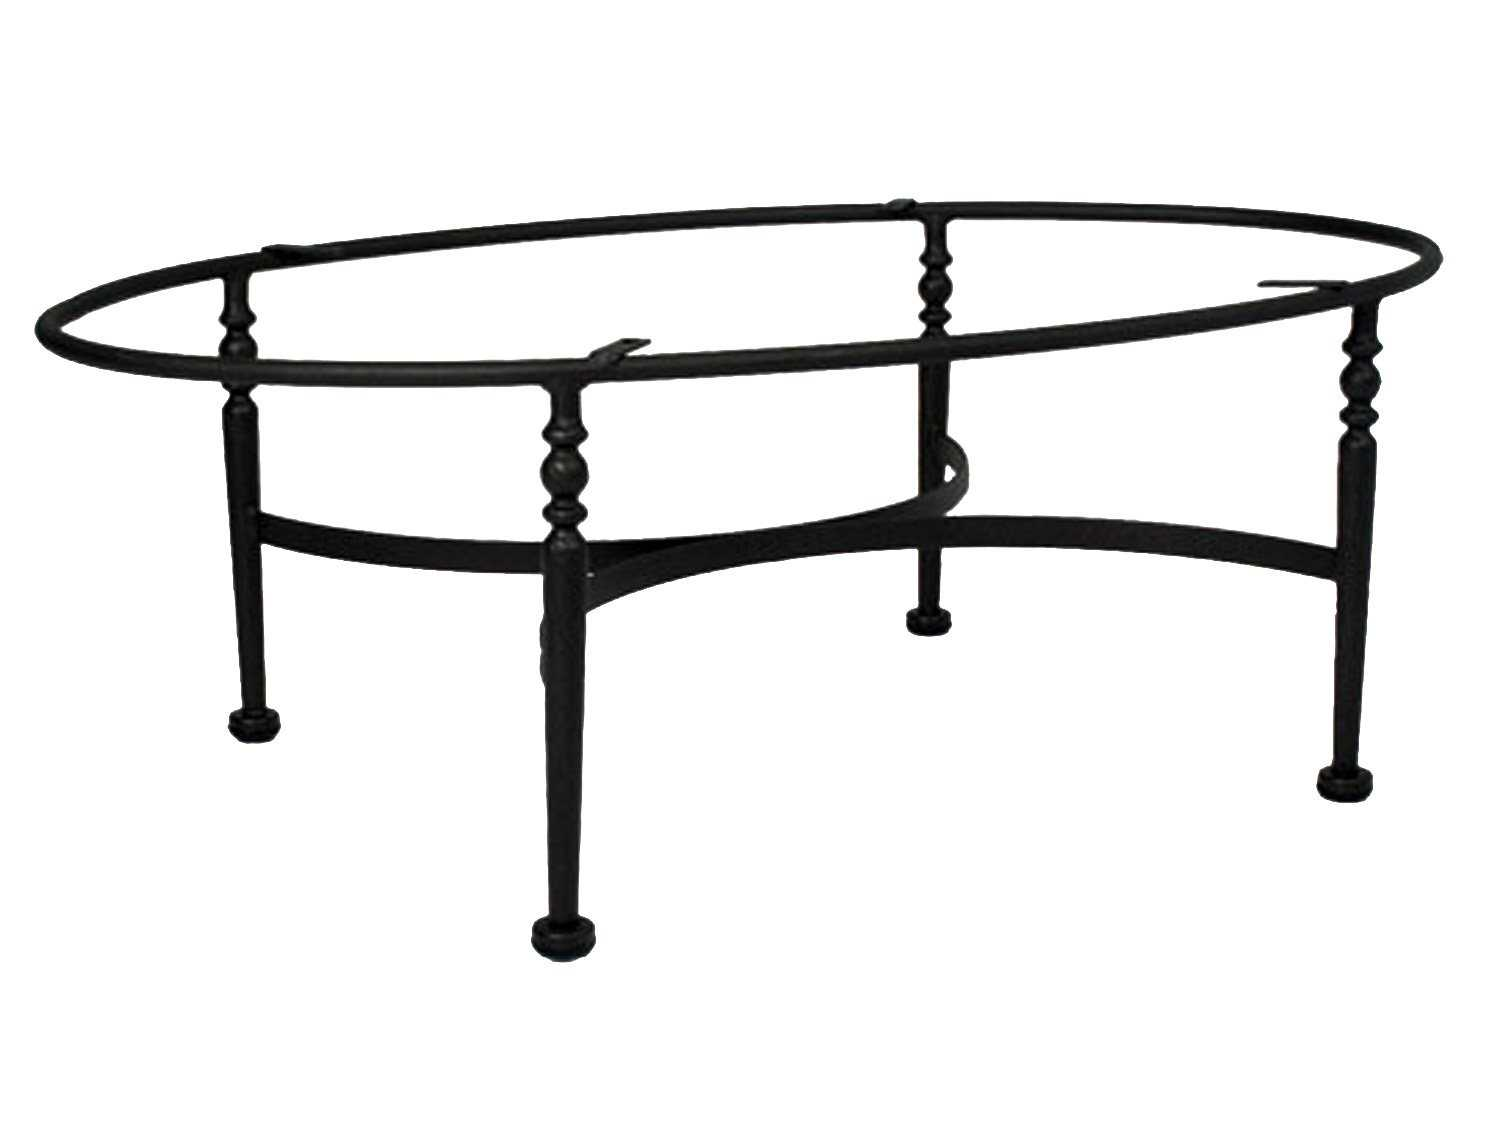 Meadowcraft athens wrought iron coffee table base 3613370 01 for Oval wrought iron coffee table with glass top